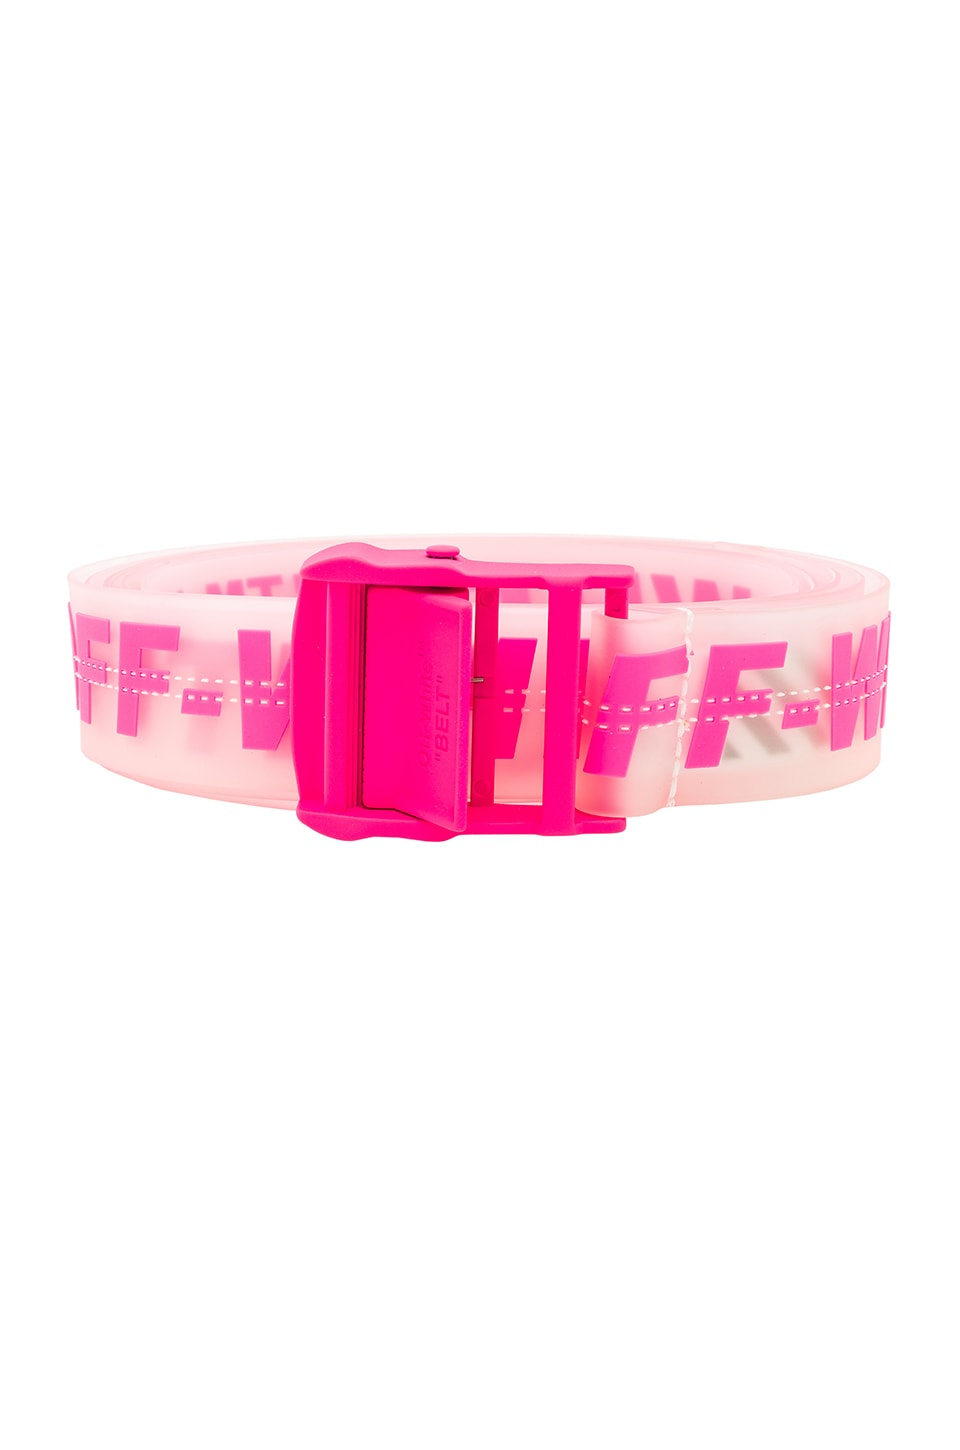 OFF-WHITE Rubber Industrial Belt in Transparent & Fuchsia